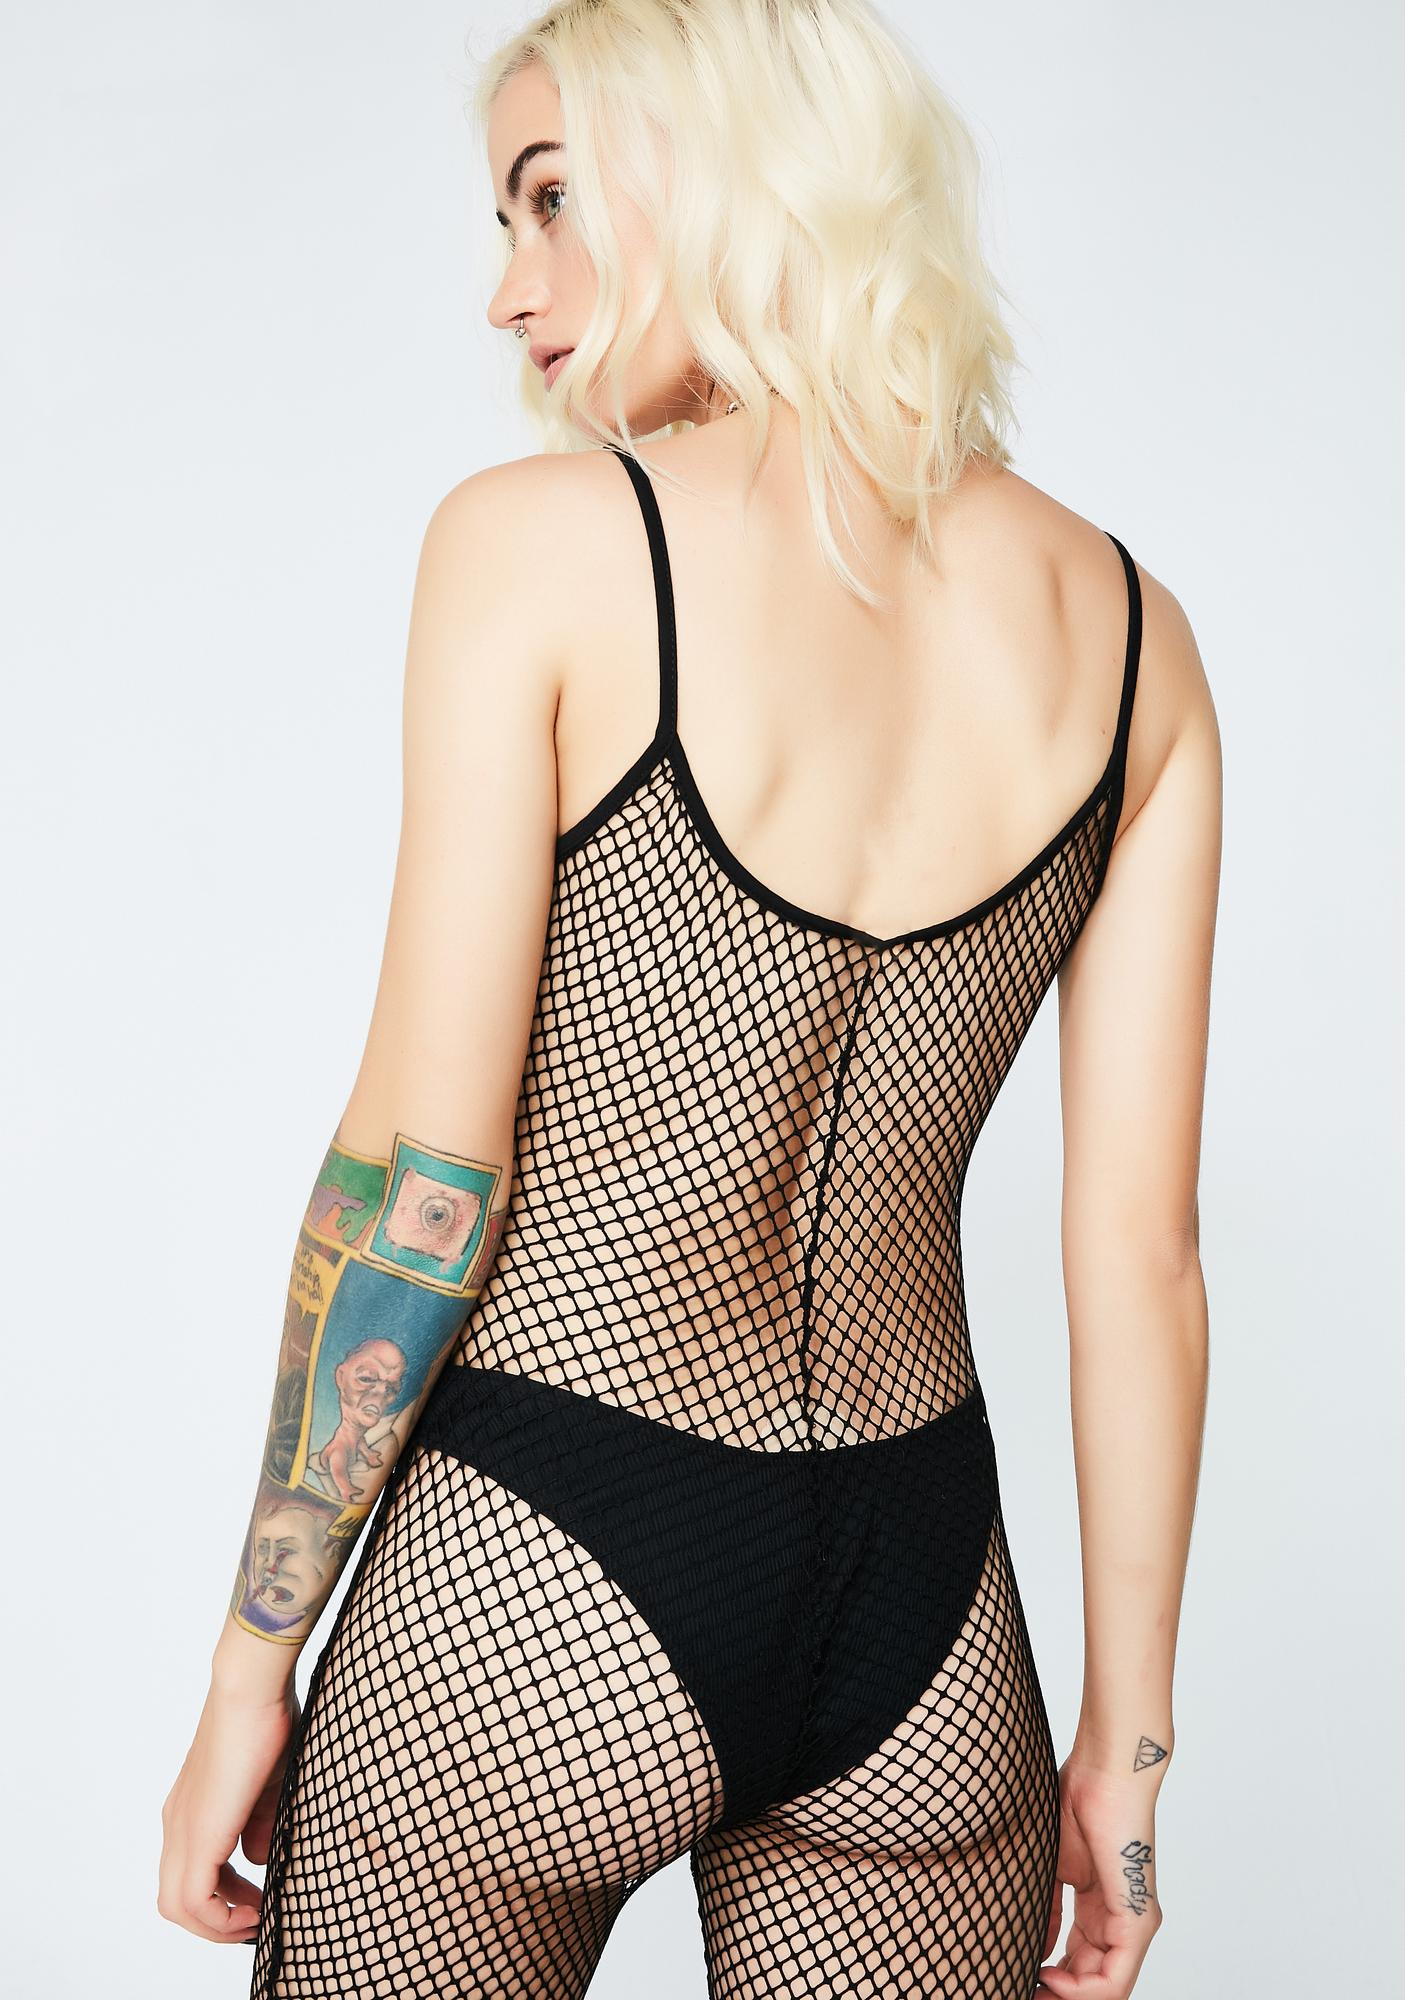 Peep This Fishnet Catsuit